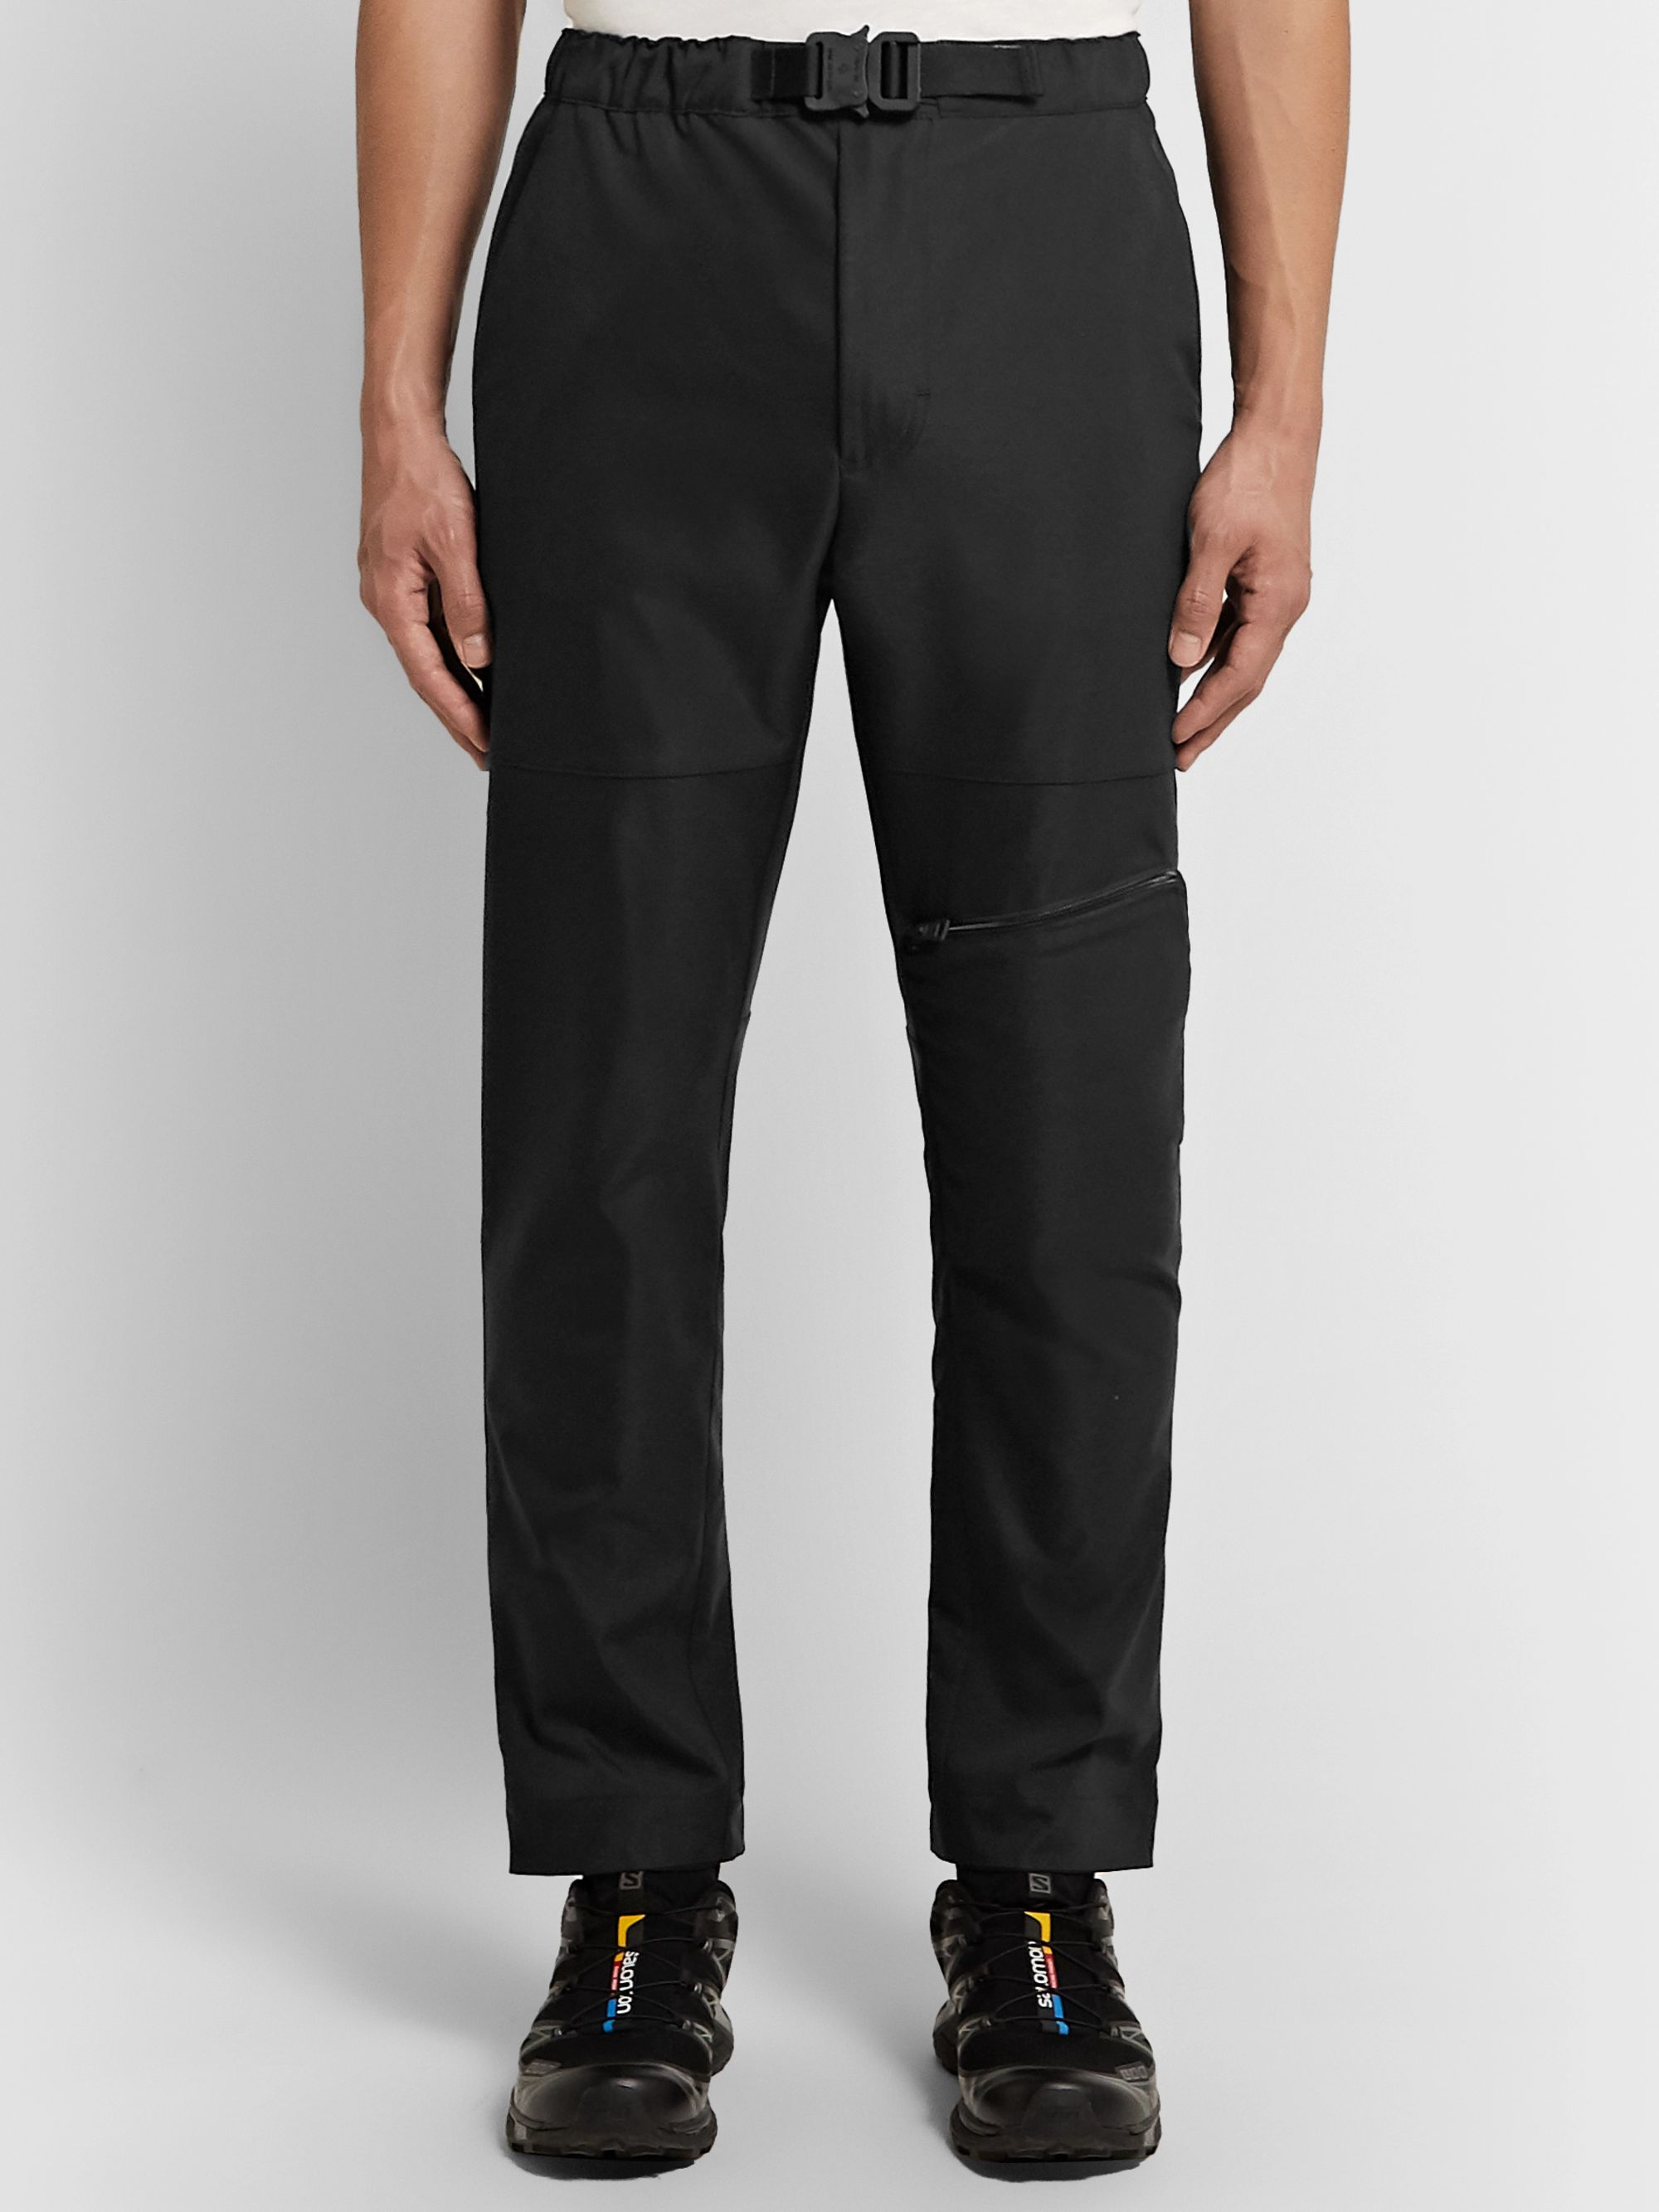 Moncler Genius 6 Moncler 1017 ALYX 9SM Slim-Fit Belted Shell Trousers